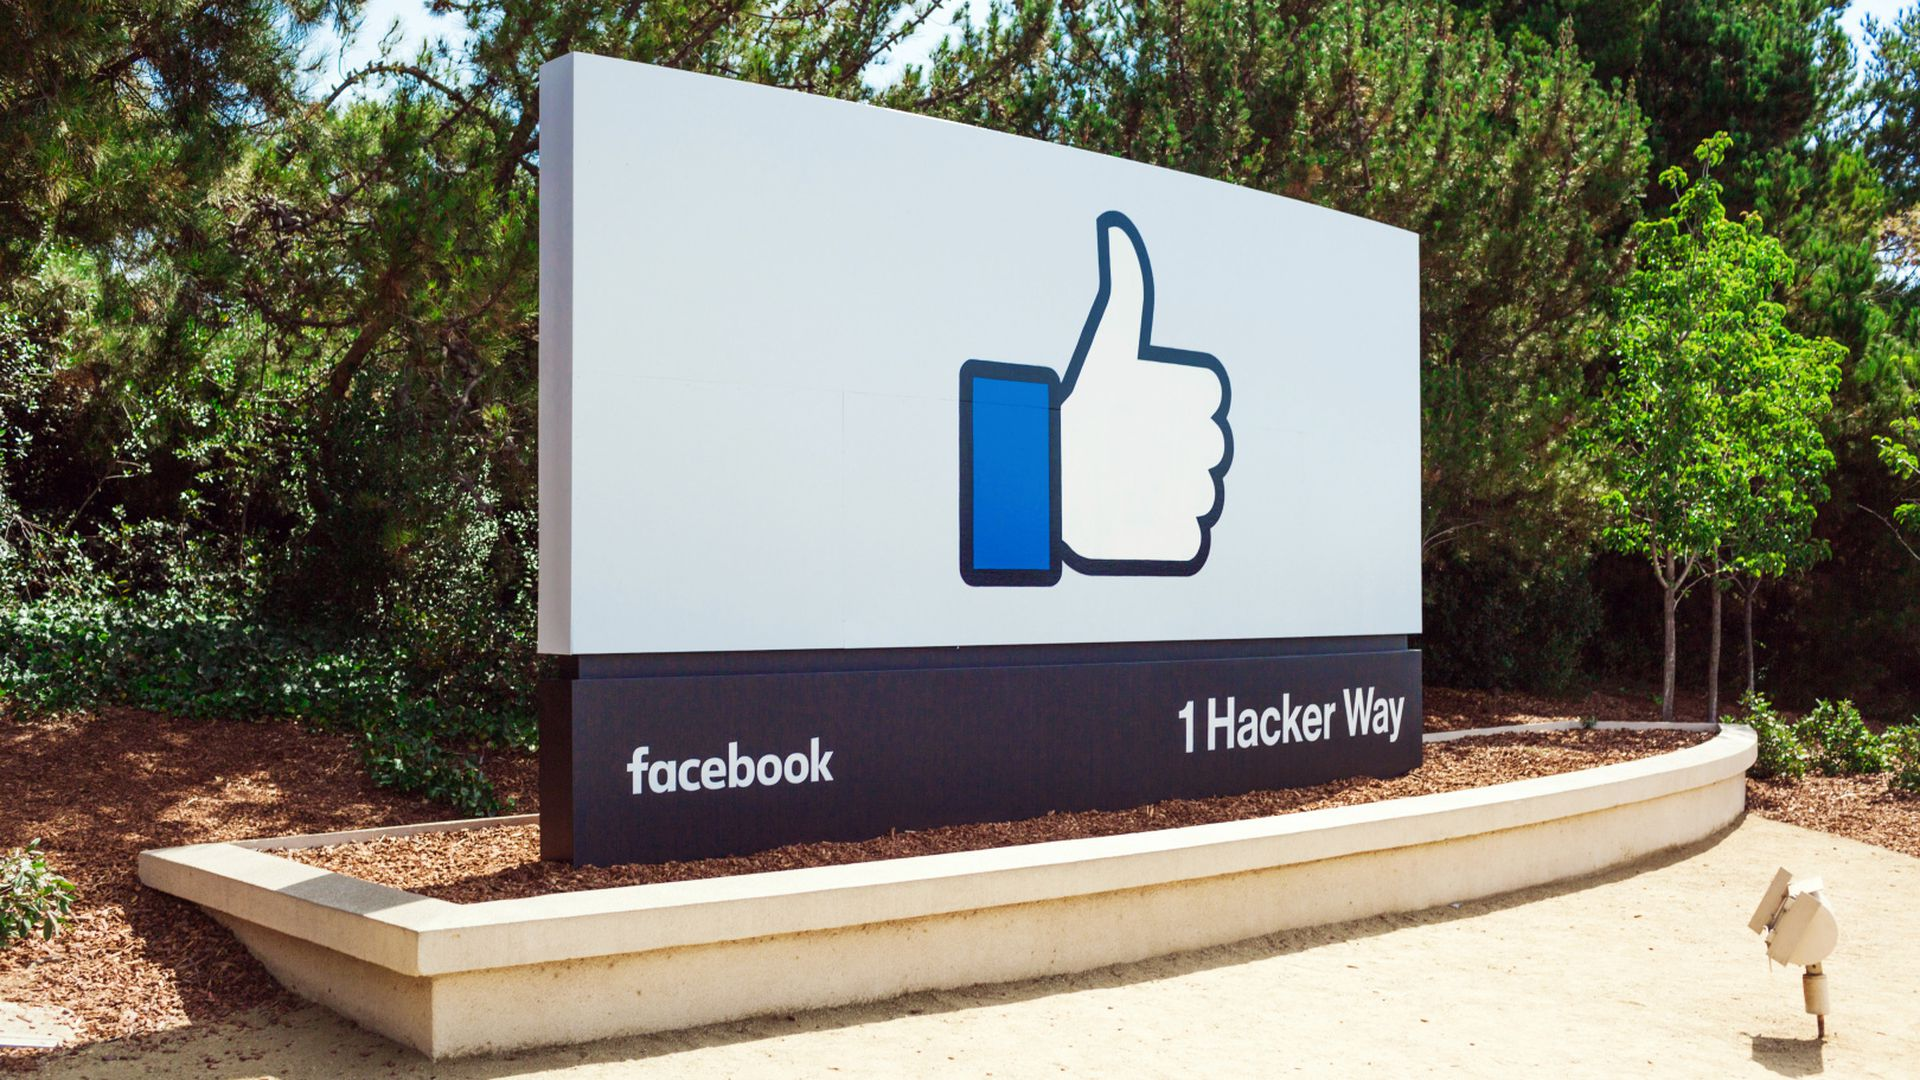 A Thumbs Up sign at Facebook's headquarters